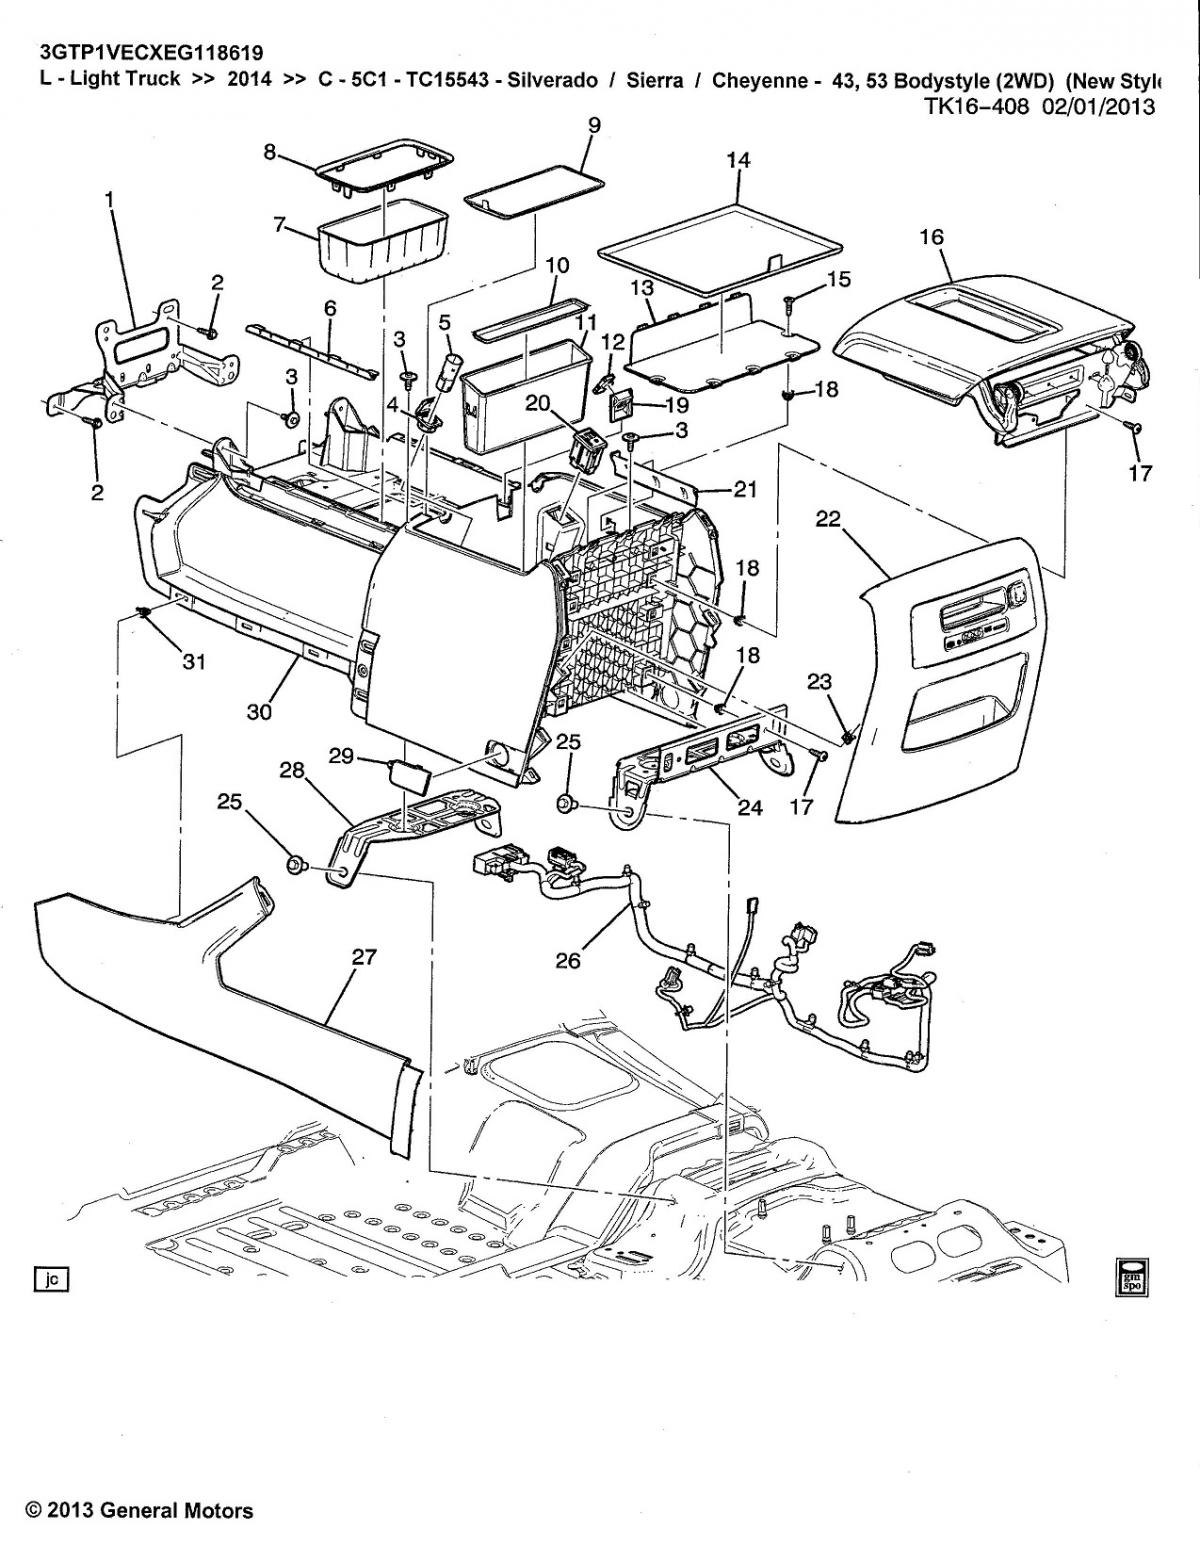 hight resolution of 2007 gmc sierra engine diagram electrical schematic wiring diagram 2007 gmc sierra engine diagram 2007 gmc sierra engine diagram